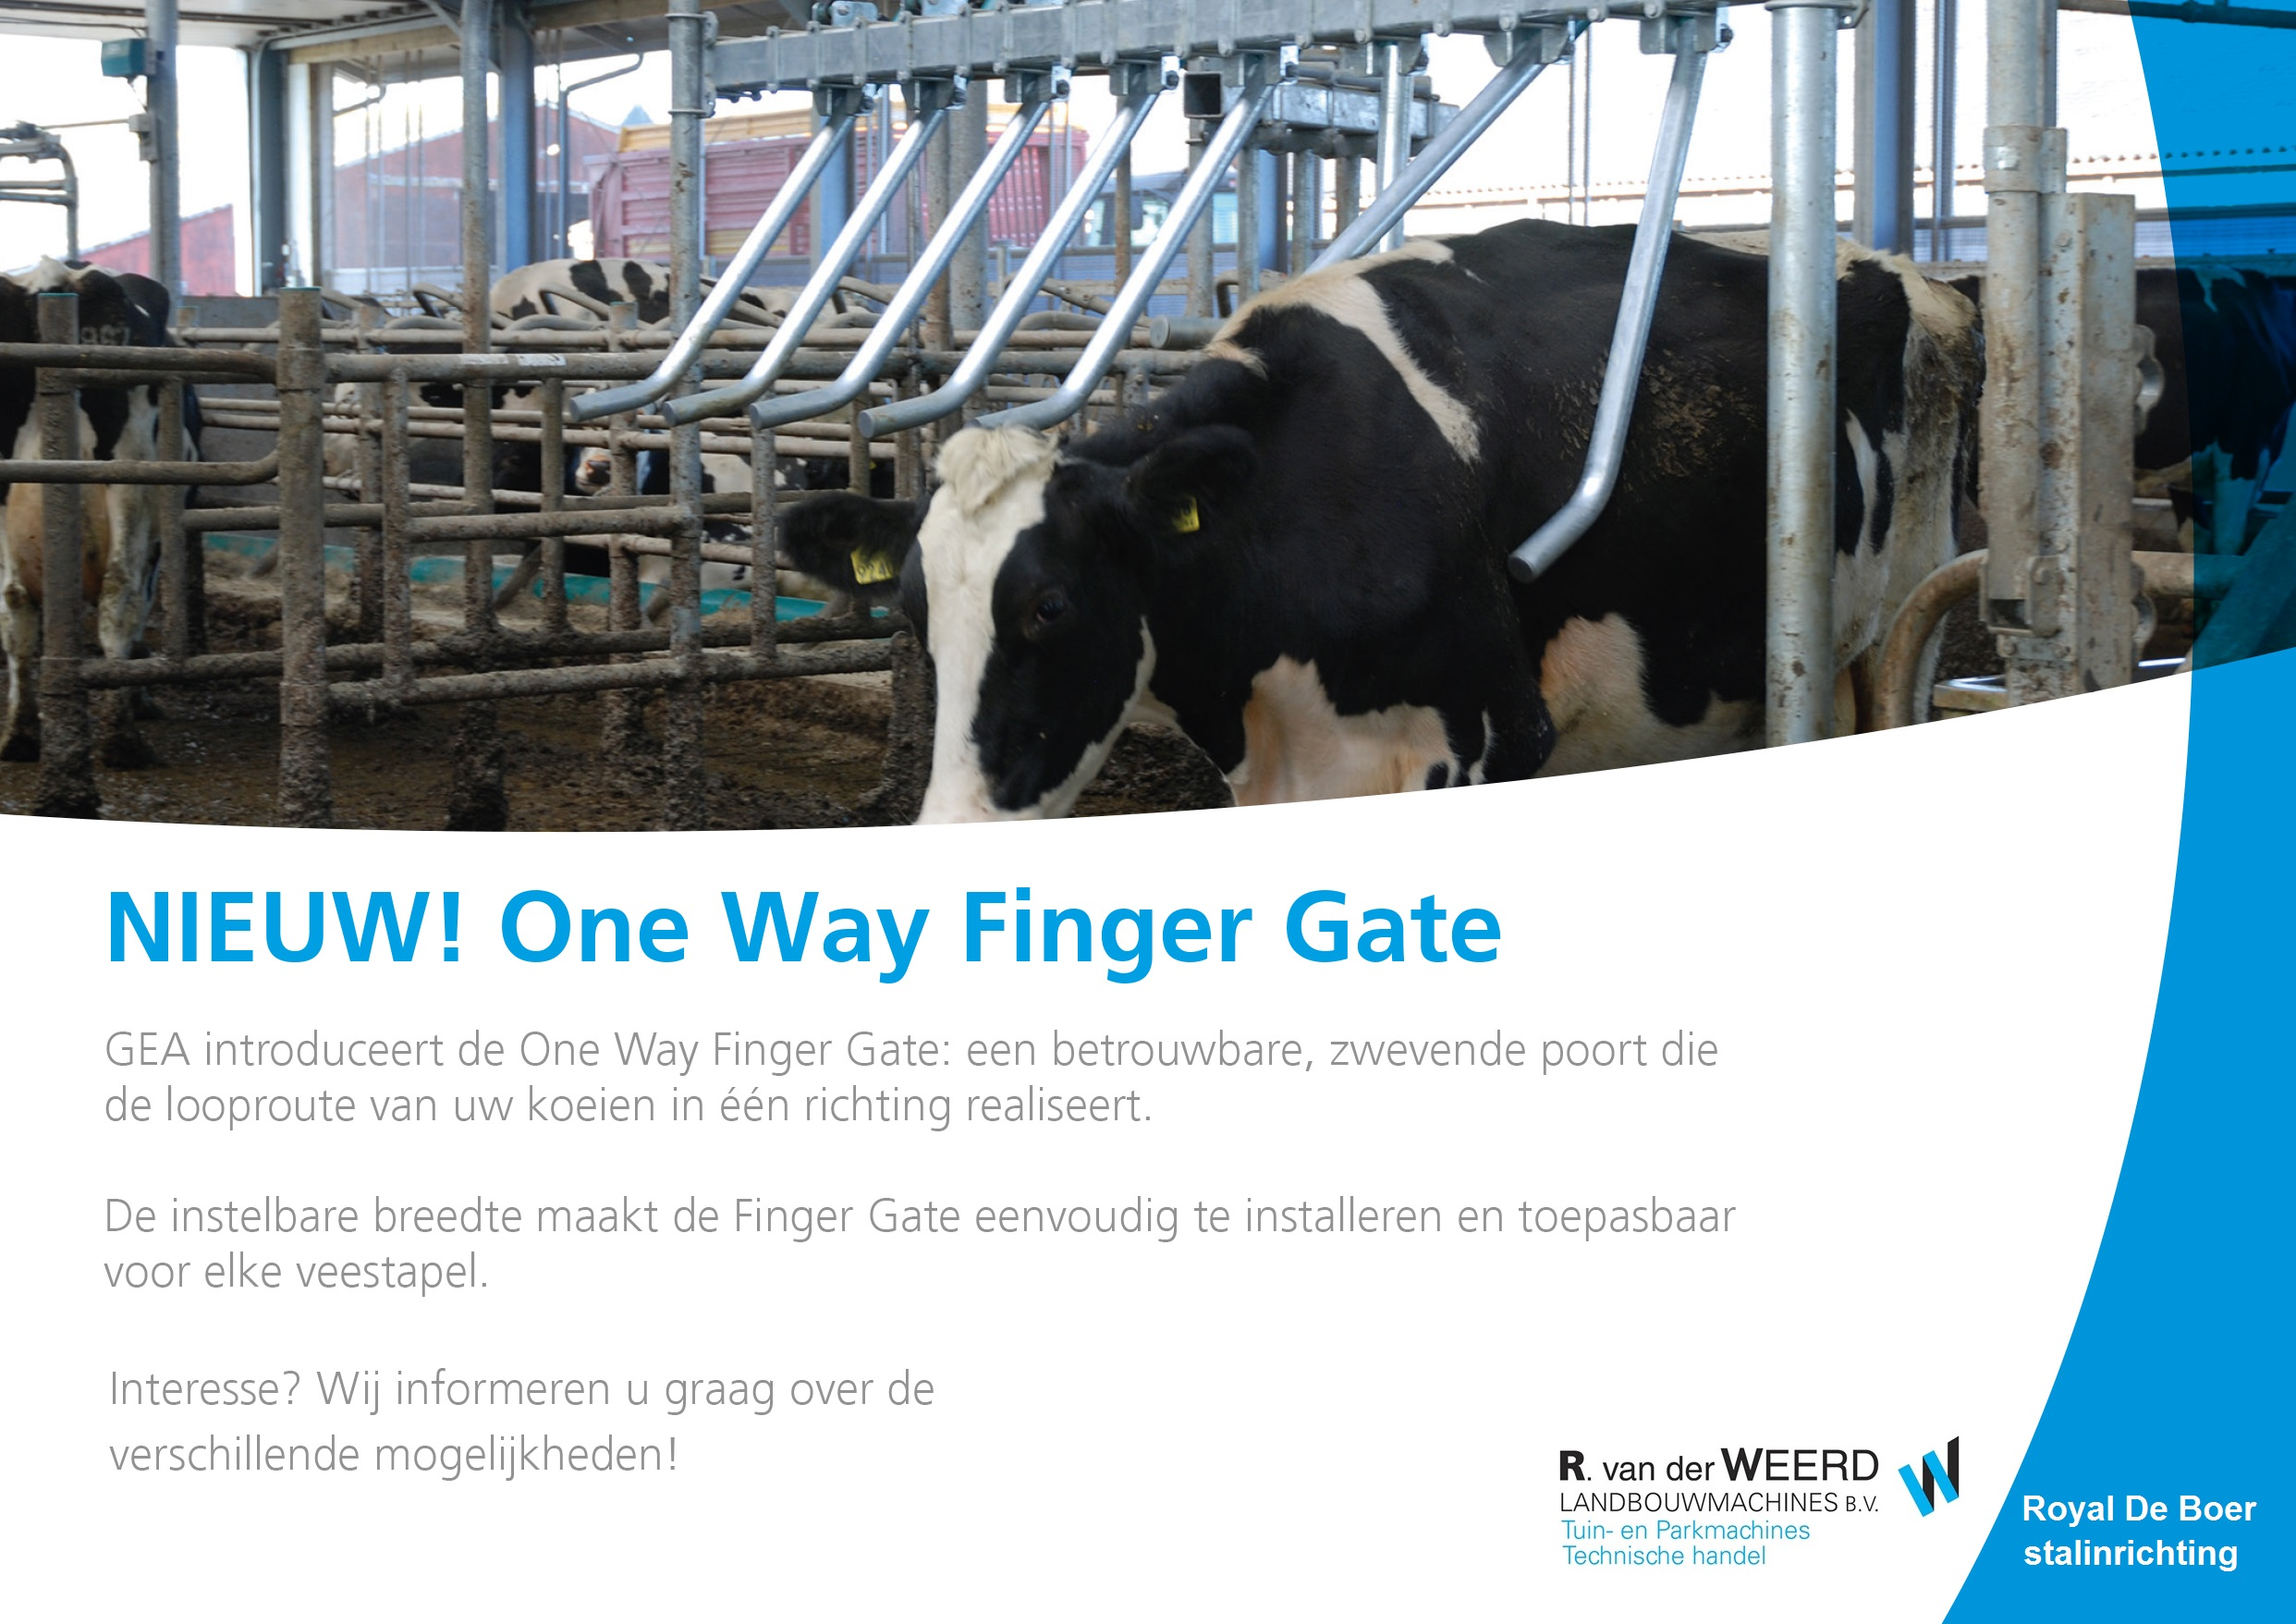 One Way Finger Gate